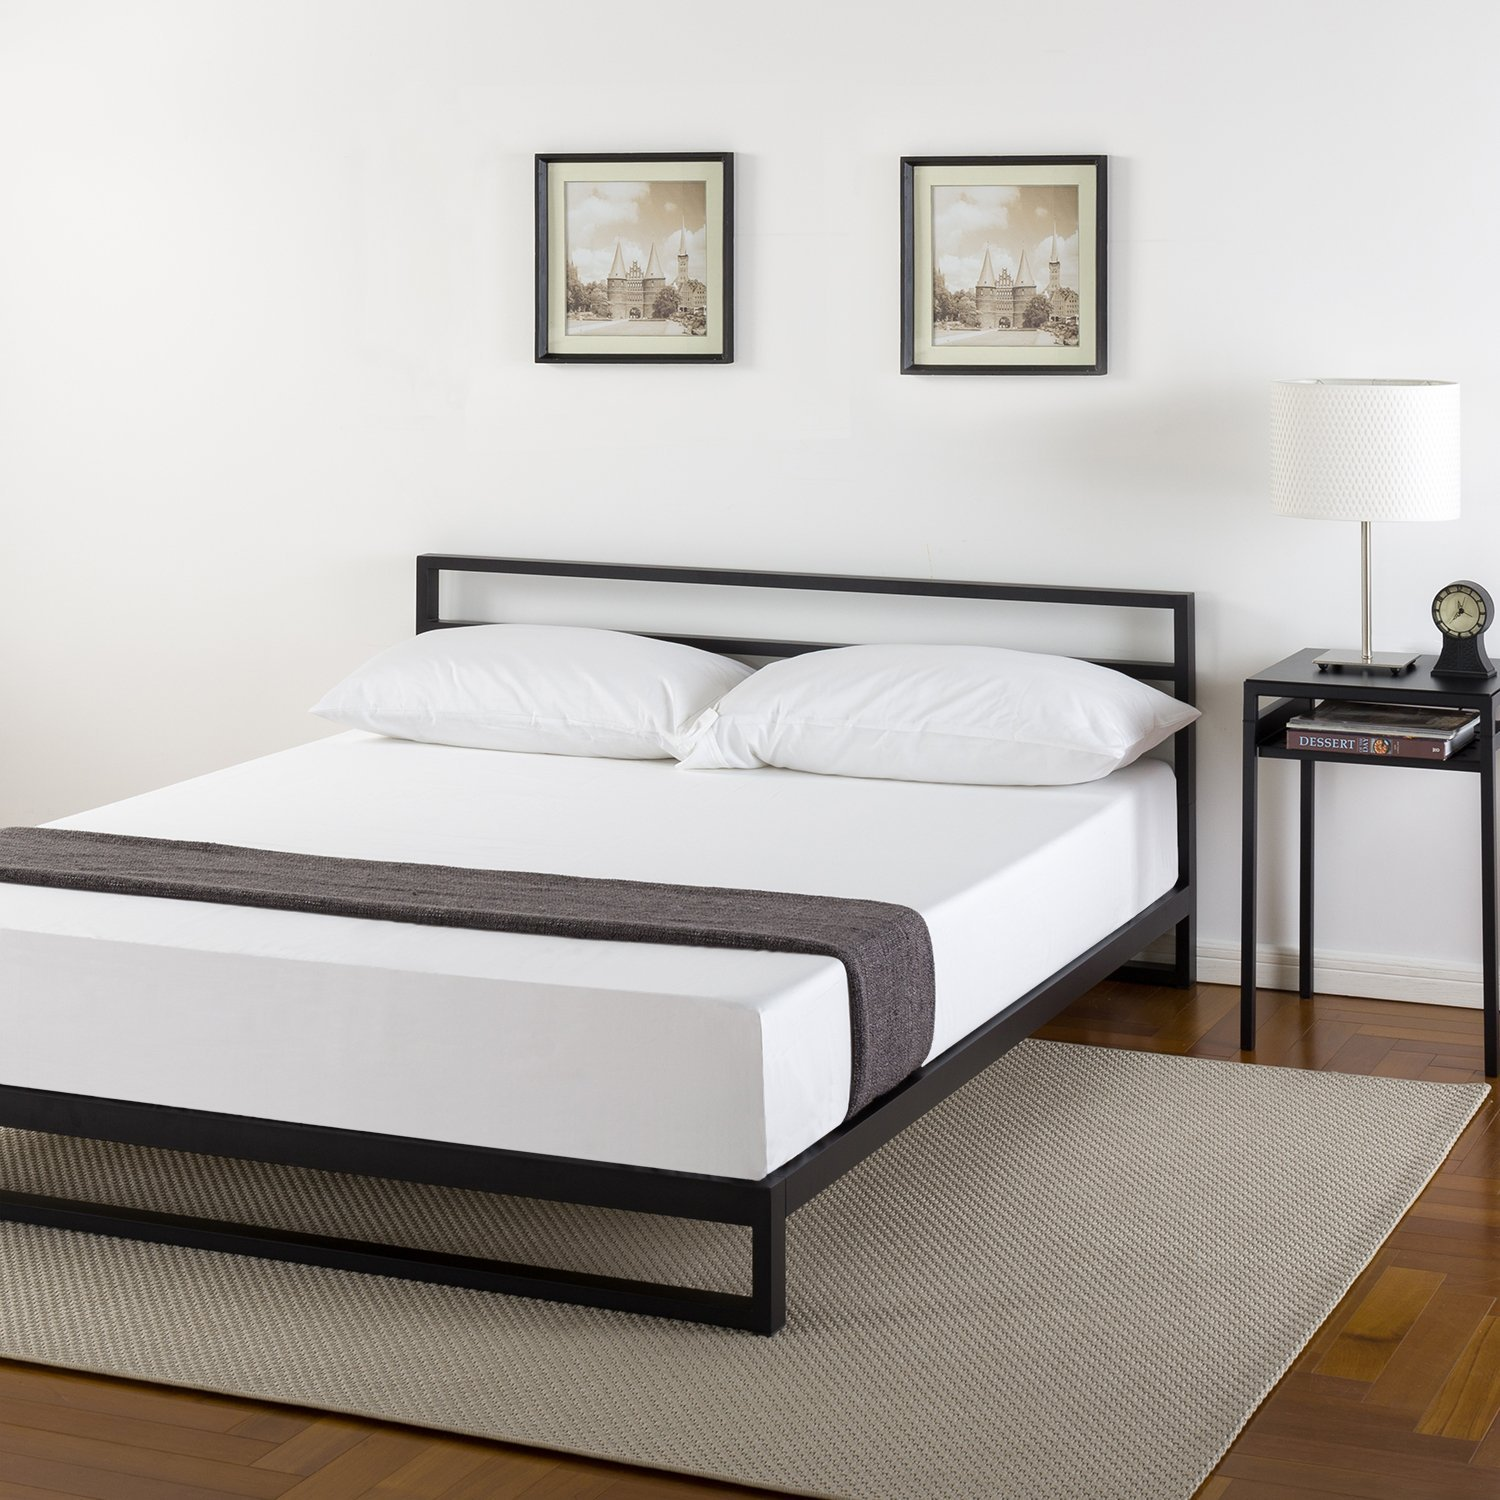 free with frame shipping frames bed metal platform platformframe